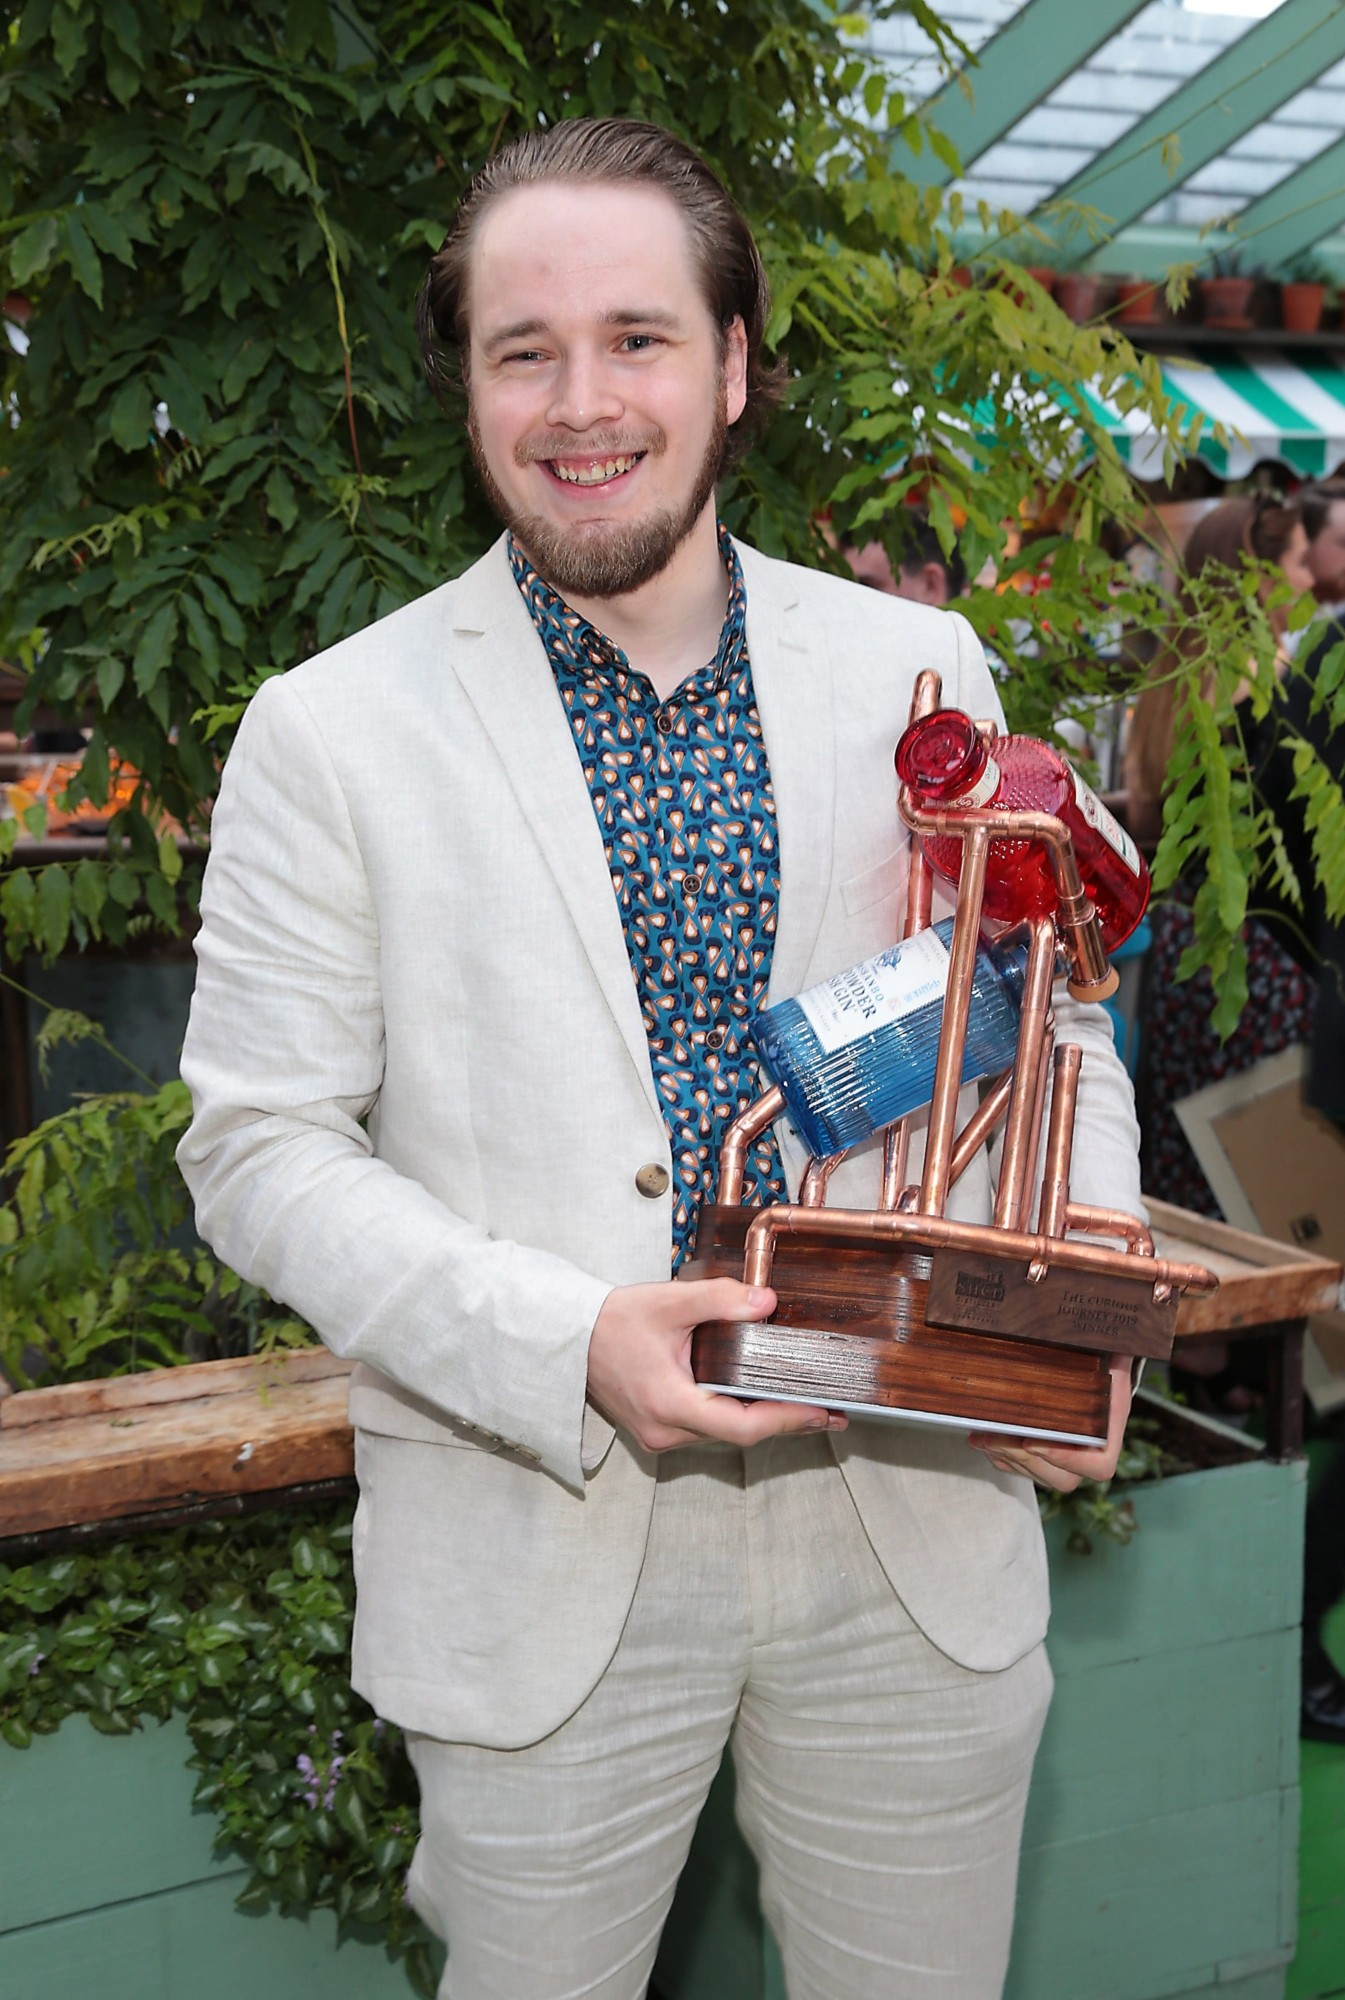 Westbury Head Bartender Wins 2019 The Shed Distillery Curious Journey Cocktail Award